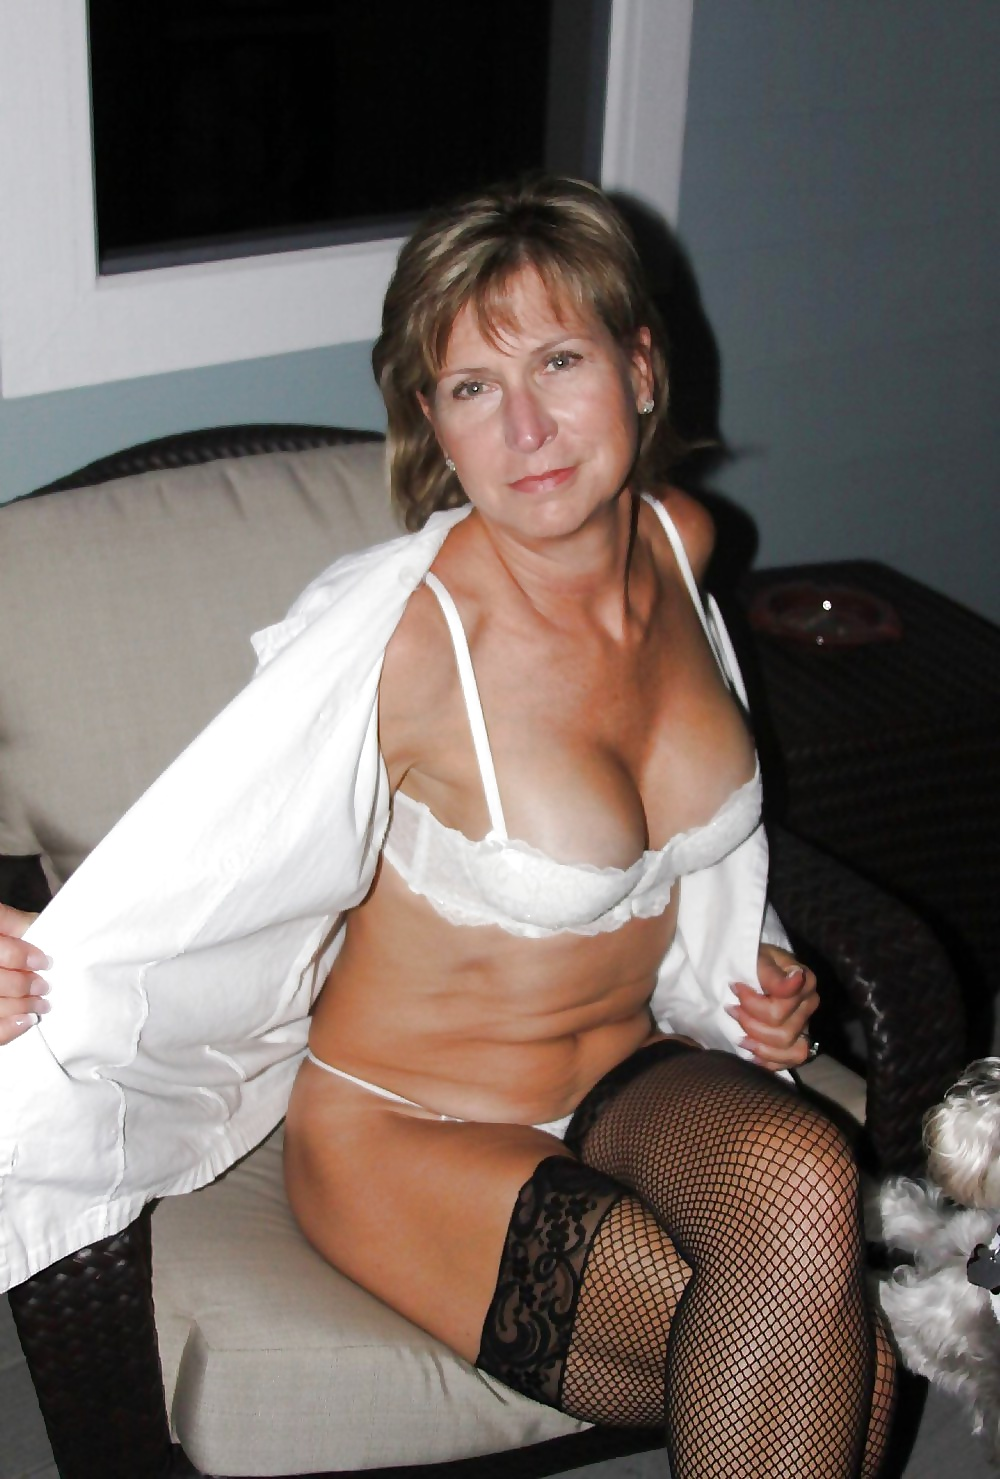 caracas single mature ladies Meet venezuelan senior singles at loveawake 100% free online dating site whatever your age we can help you meet mature men and women from venezuela no tricks and hidden charges browse venezuelan personals of men and women without payment.